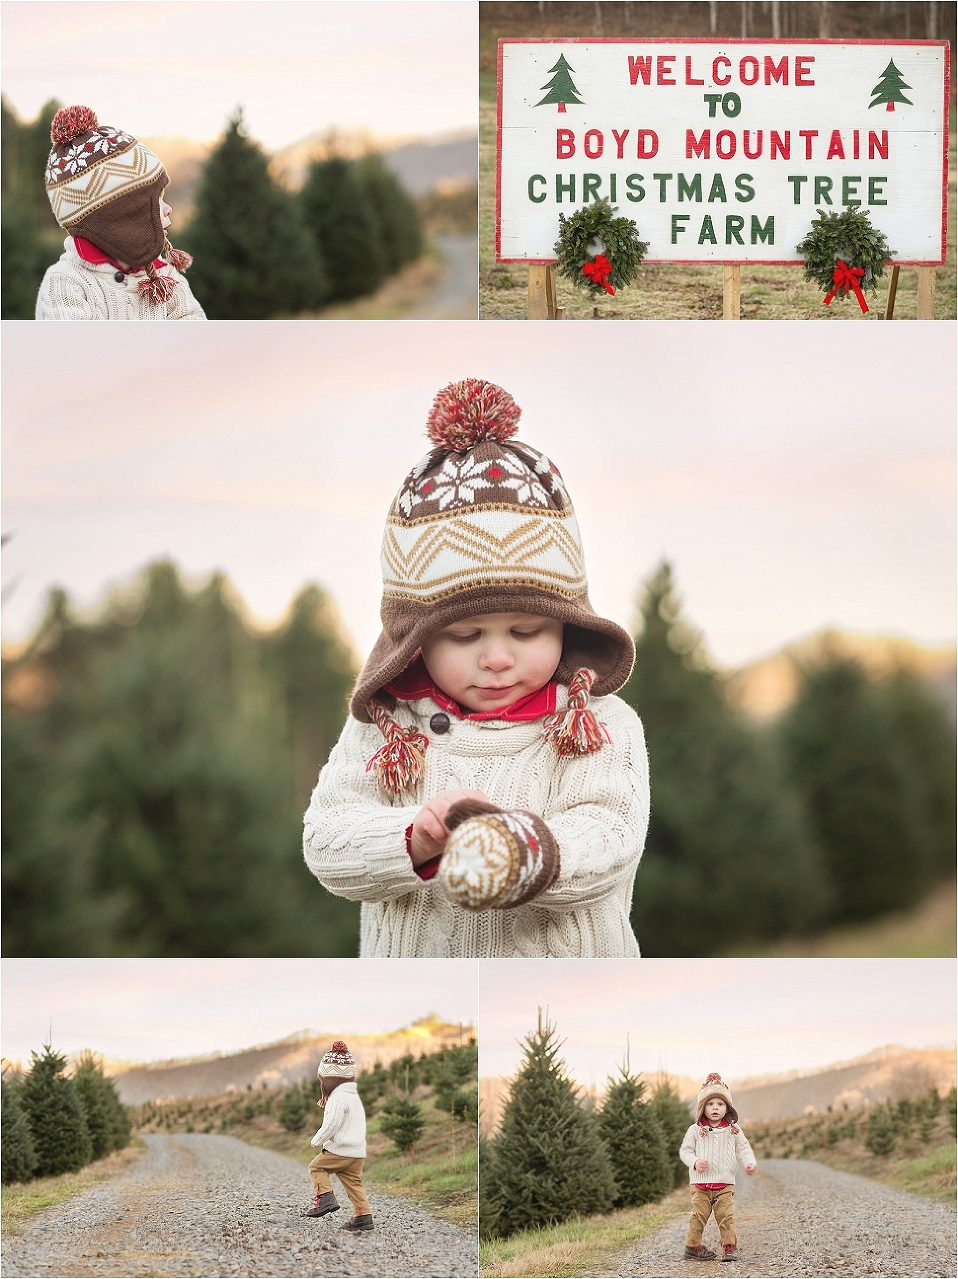 Tree Farm Detour | North Carolina, Boyd Mountain Christmas Tree ...